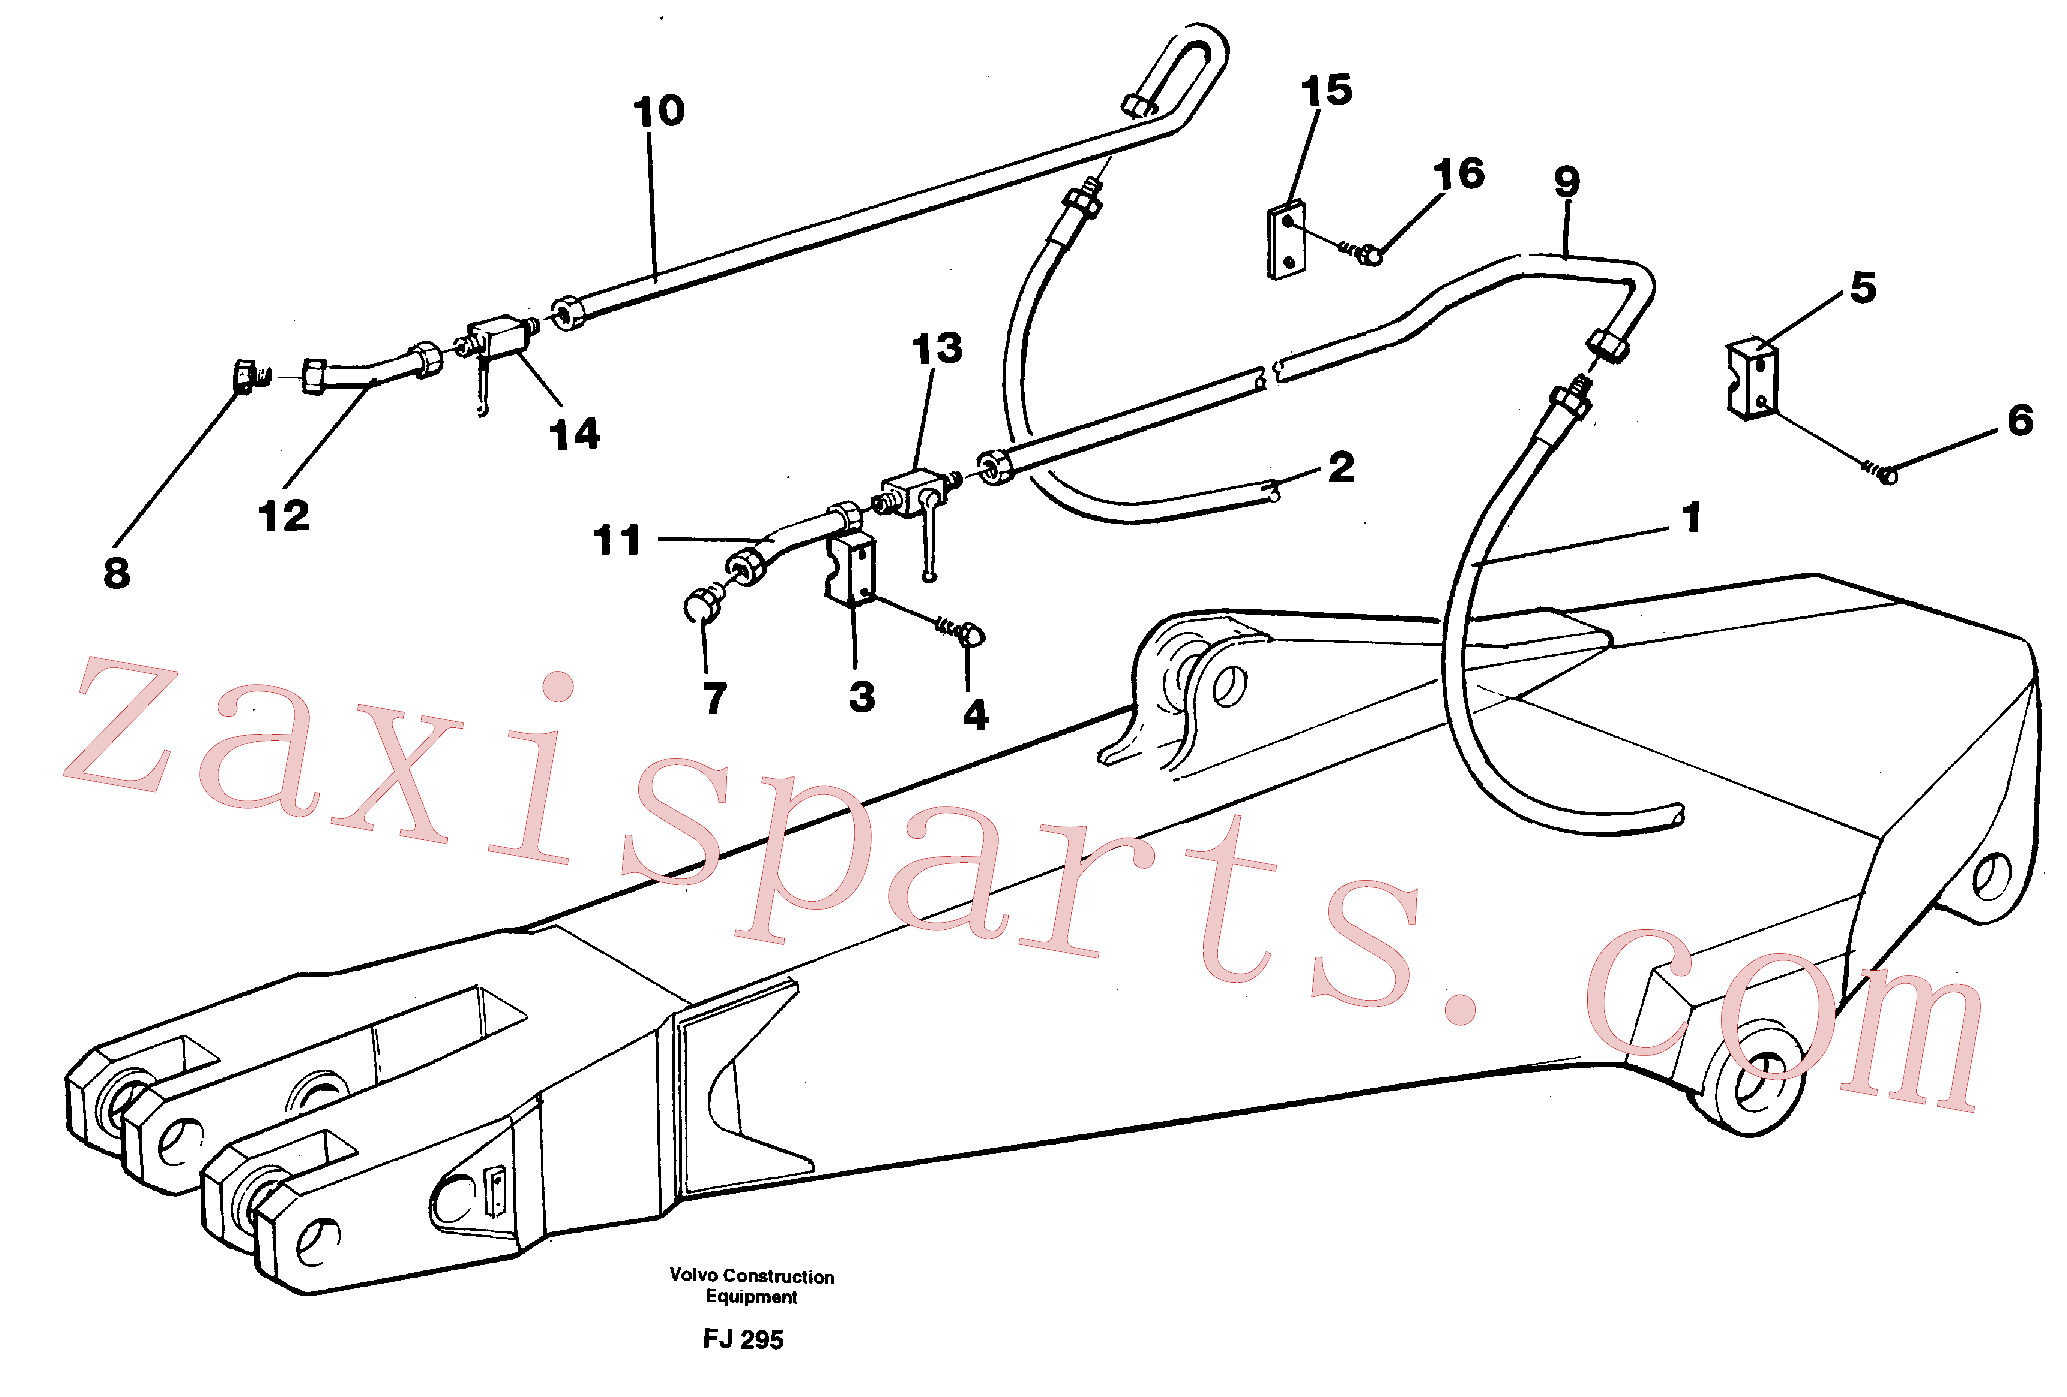 VOE14210942 for Volvo Hammer hydraulics for dipper arm incl. shut-offcocks.(FJ295 assembly)